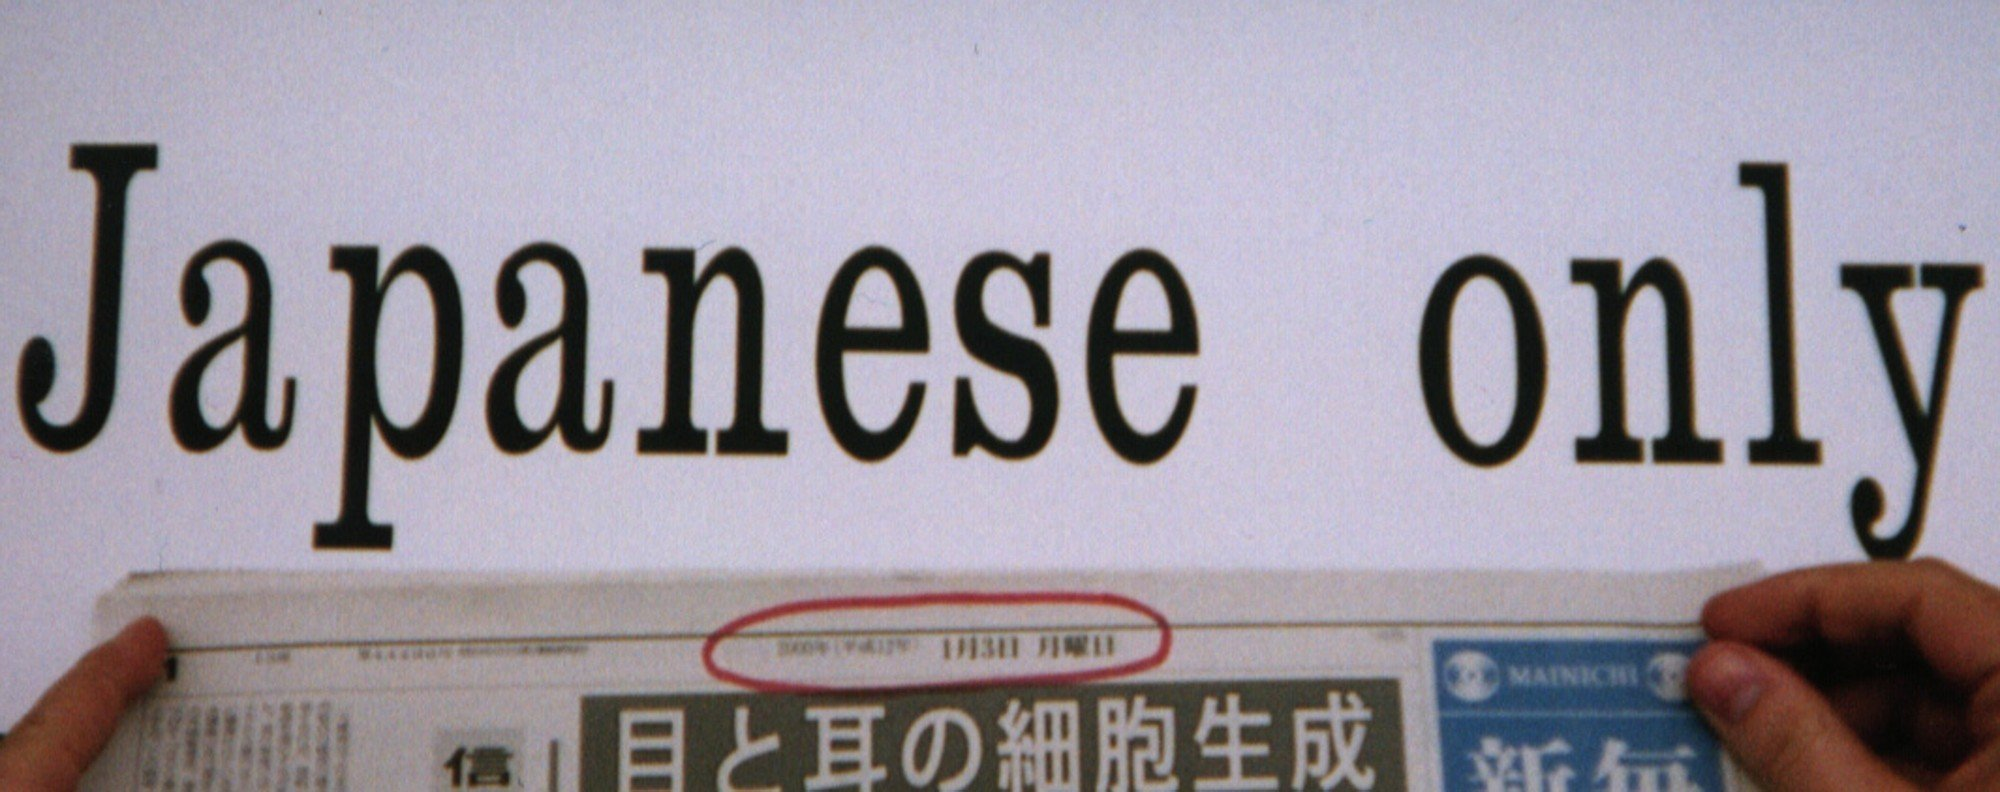 Why do the Chinese people hate the Japanese